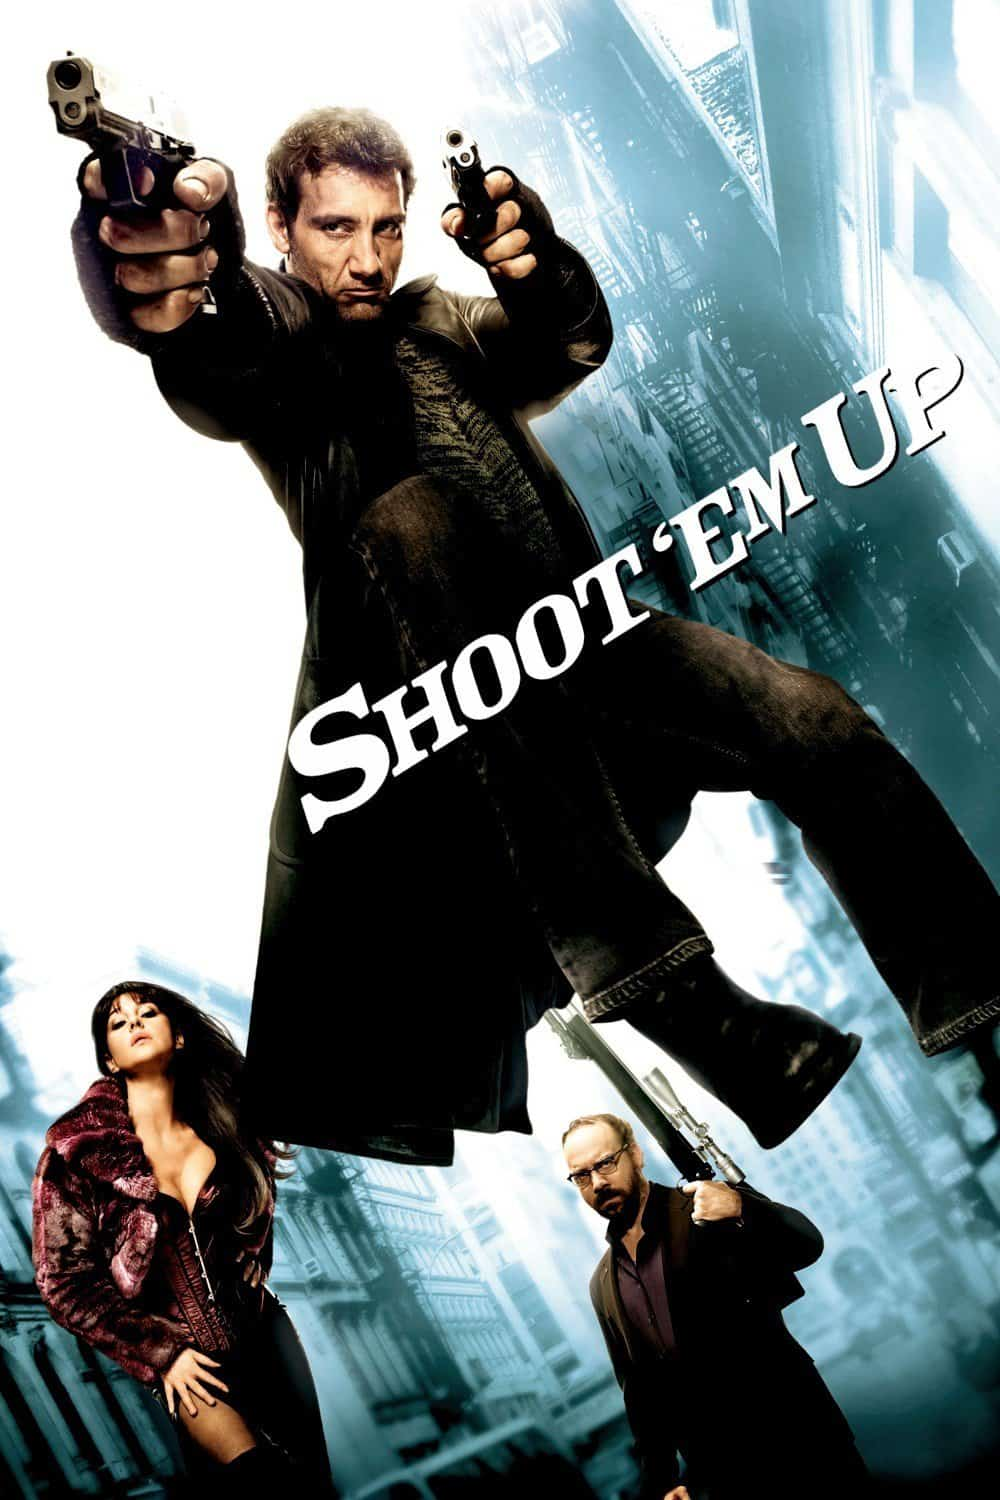 Shoot 'Em Up, 2007